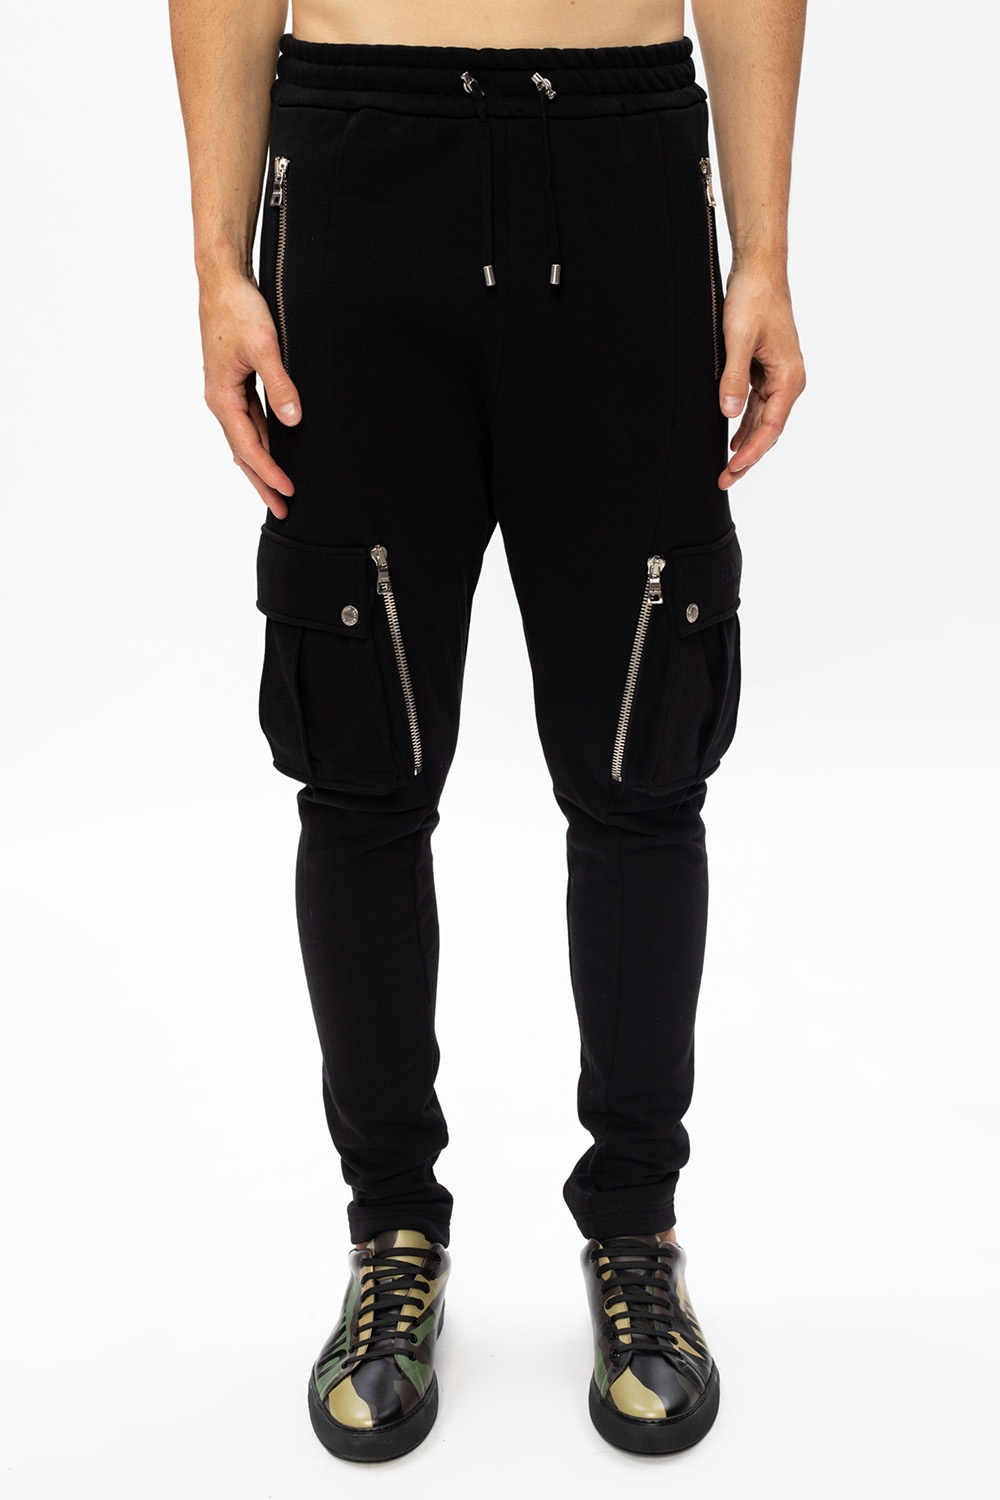 Balmain Sweatpants with pockets